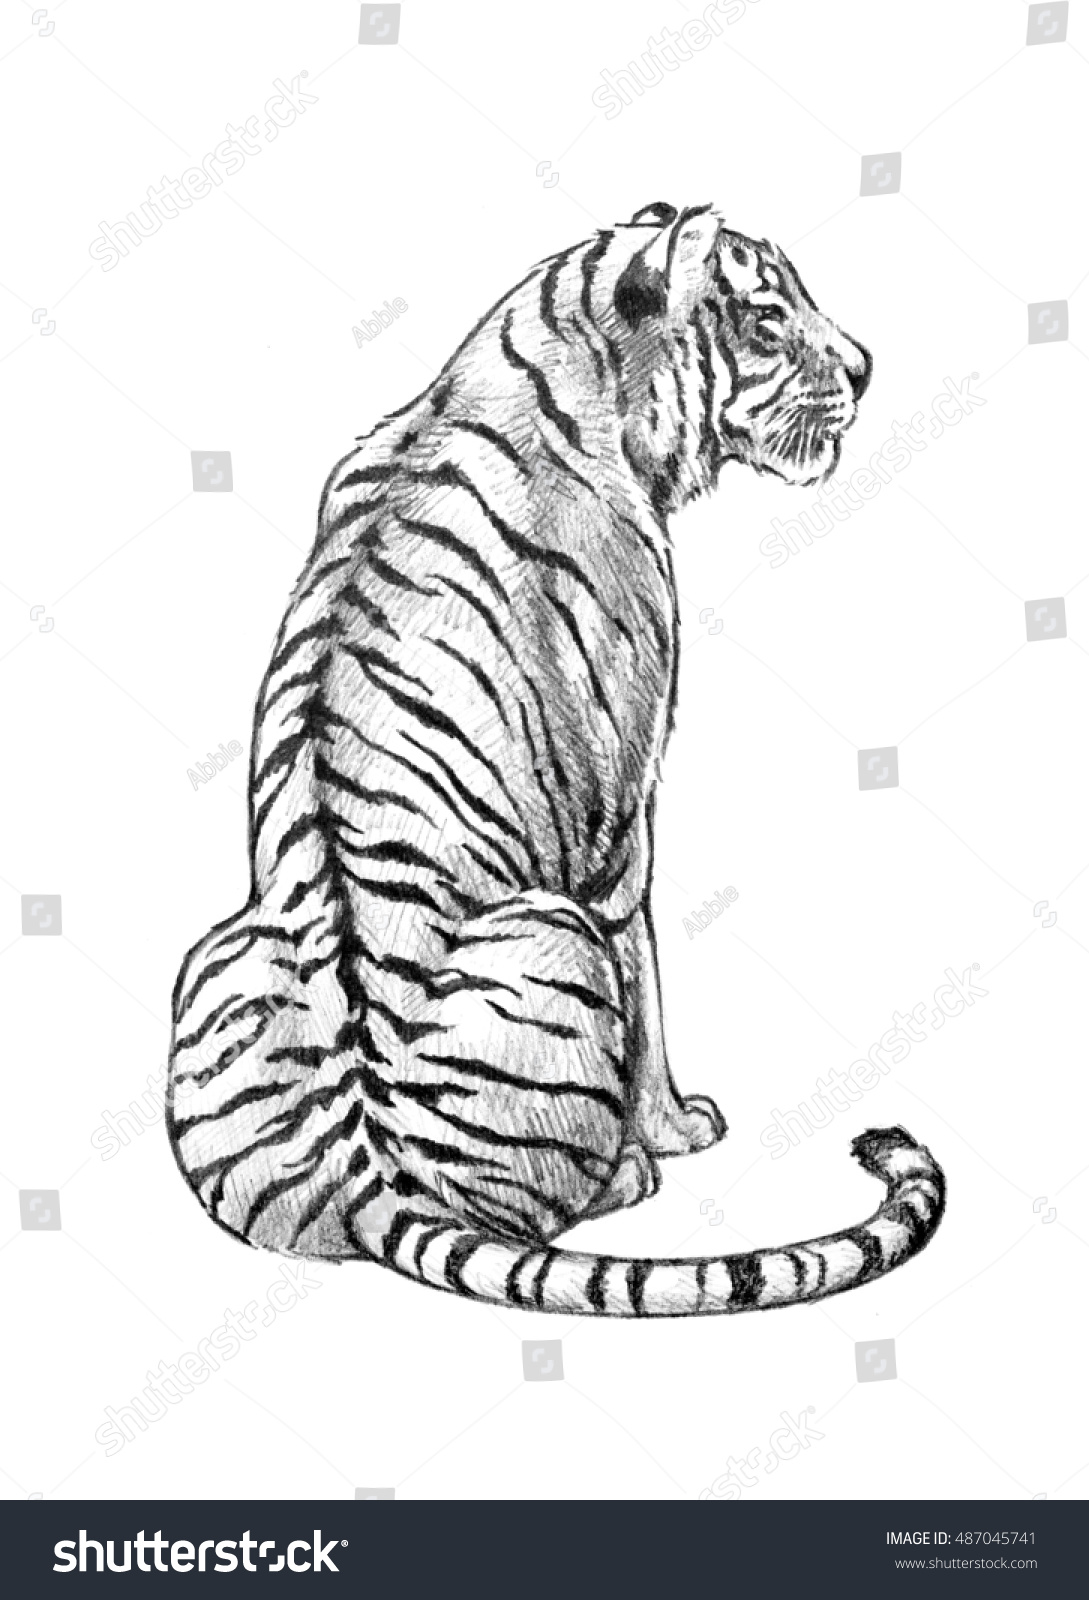 A tiger illustration of a powerful jungle animal in a hand sketched pencil drawing